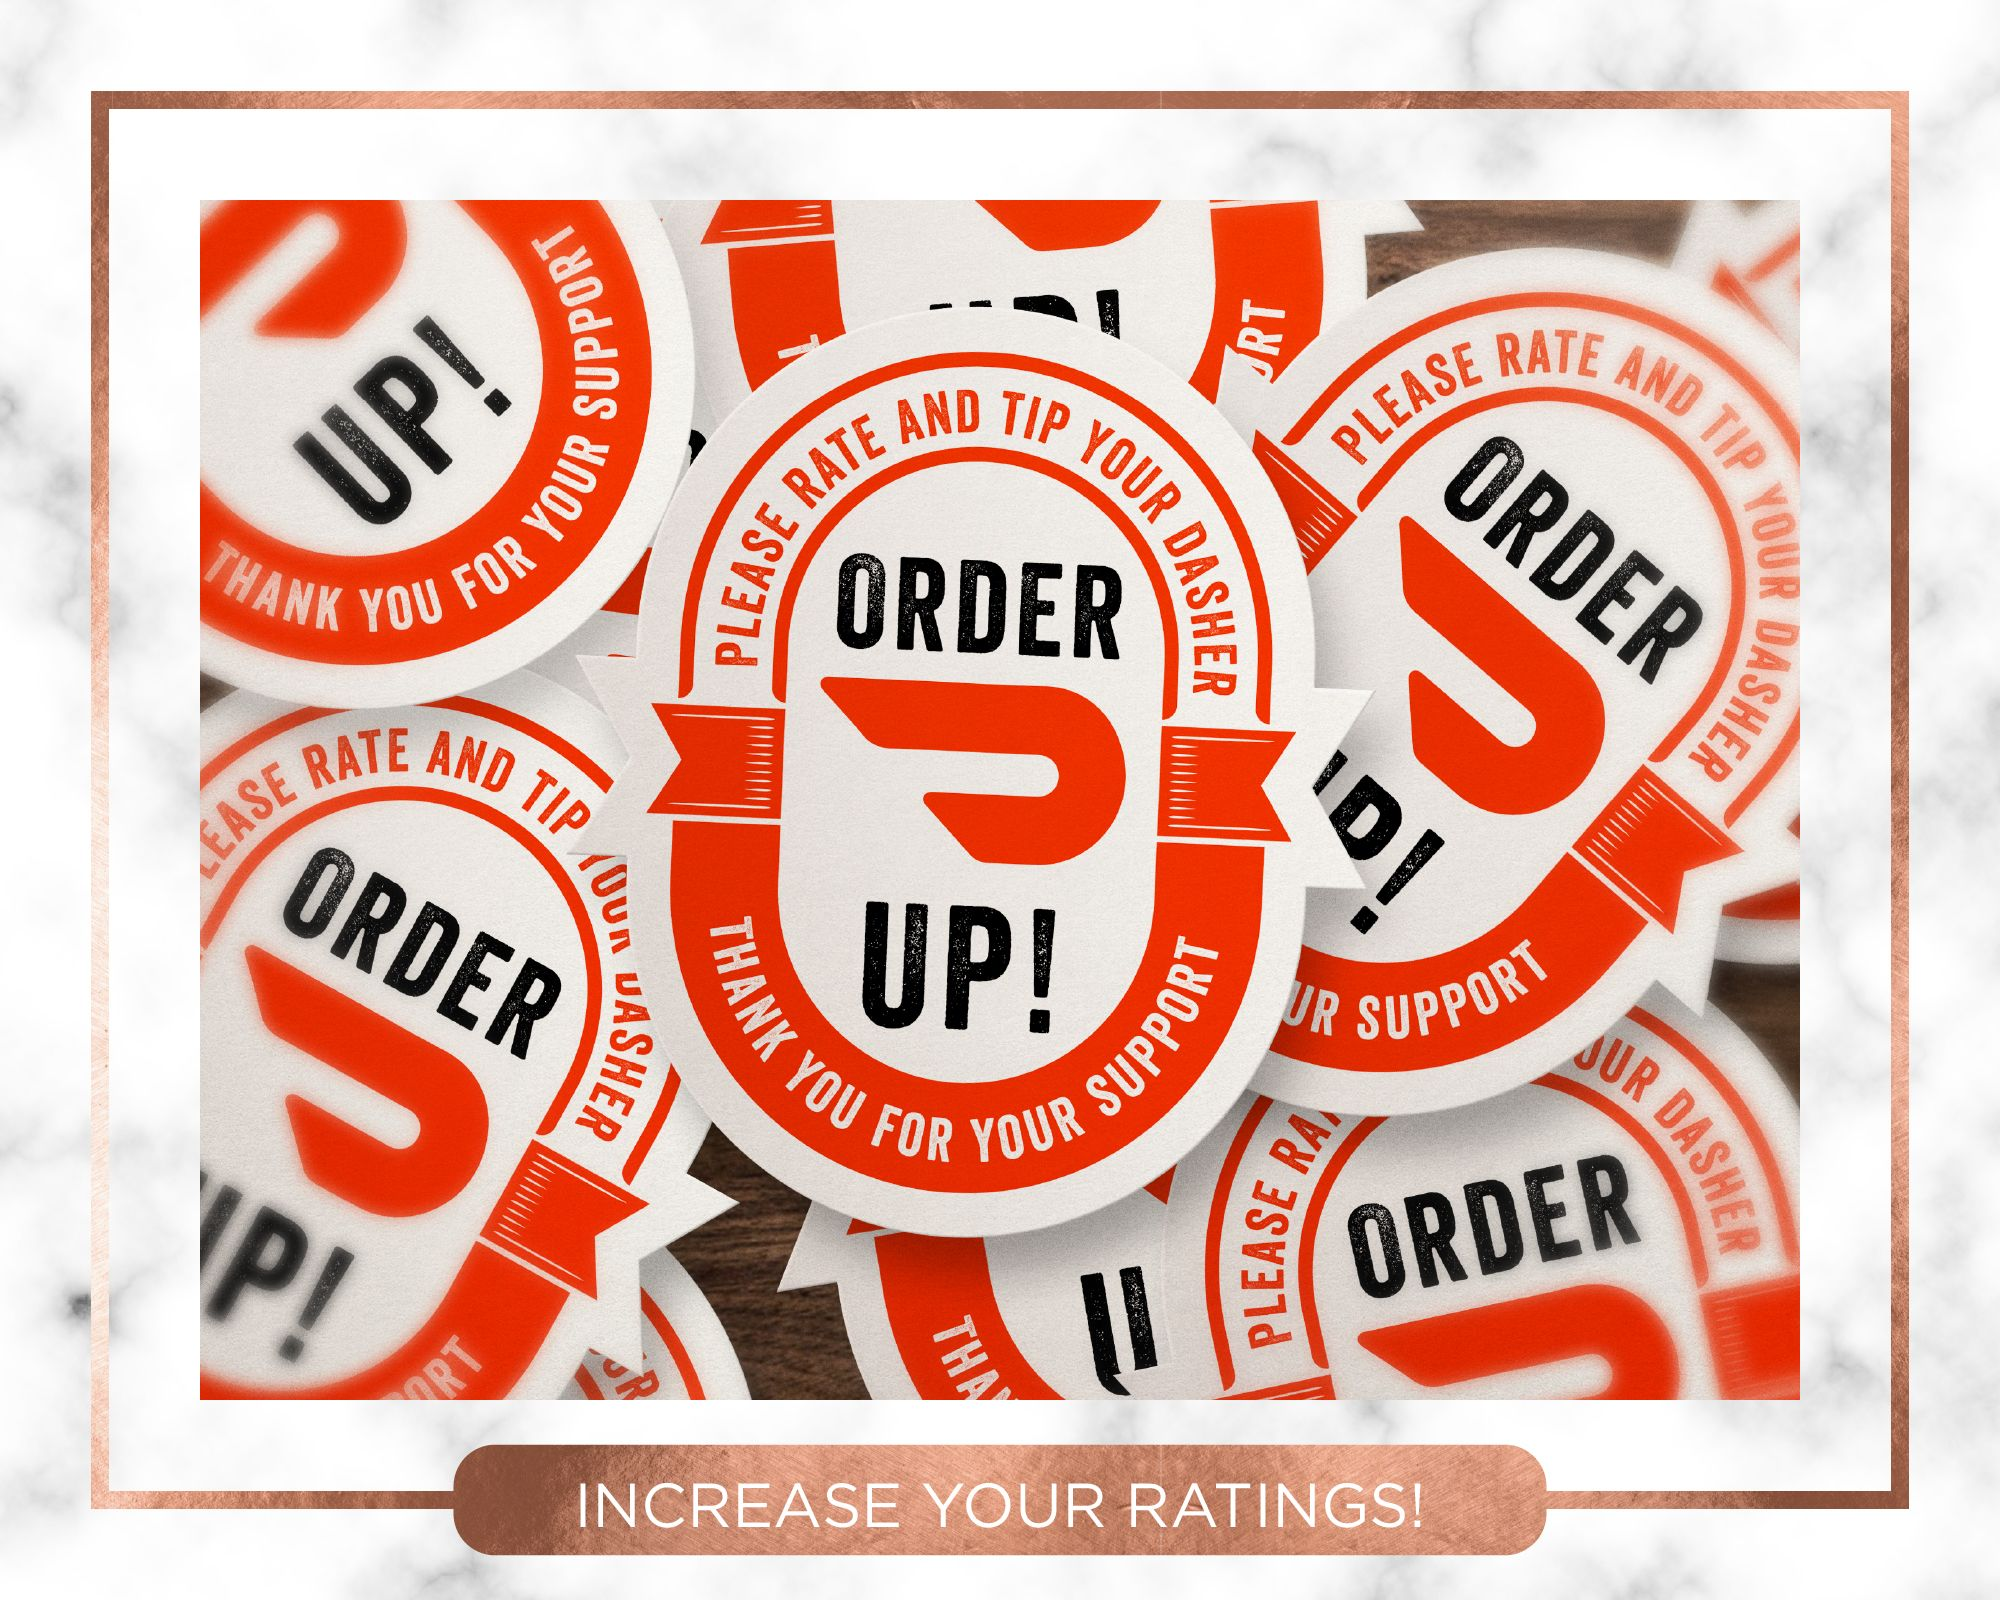 Doordash Dasher Delivery Driver Stickers Bag Stickers Order Up Stickers Doordash Accessories Stickers For Doordasher Or Dasher Doordash Delivery Driver Stickers